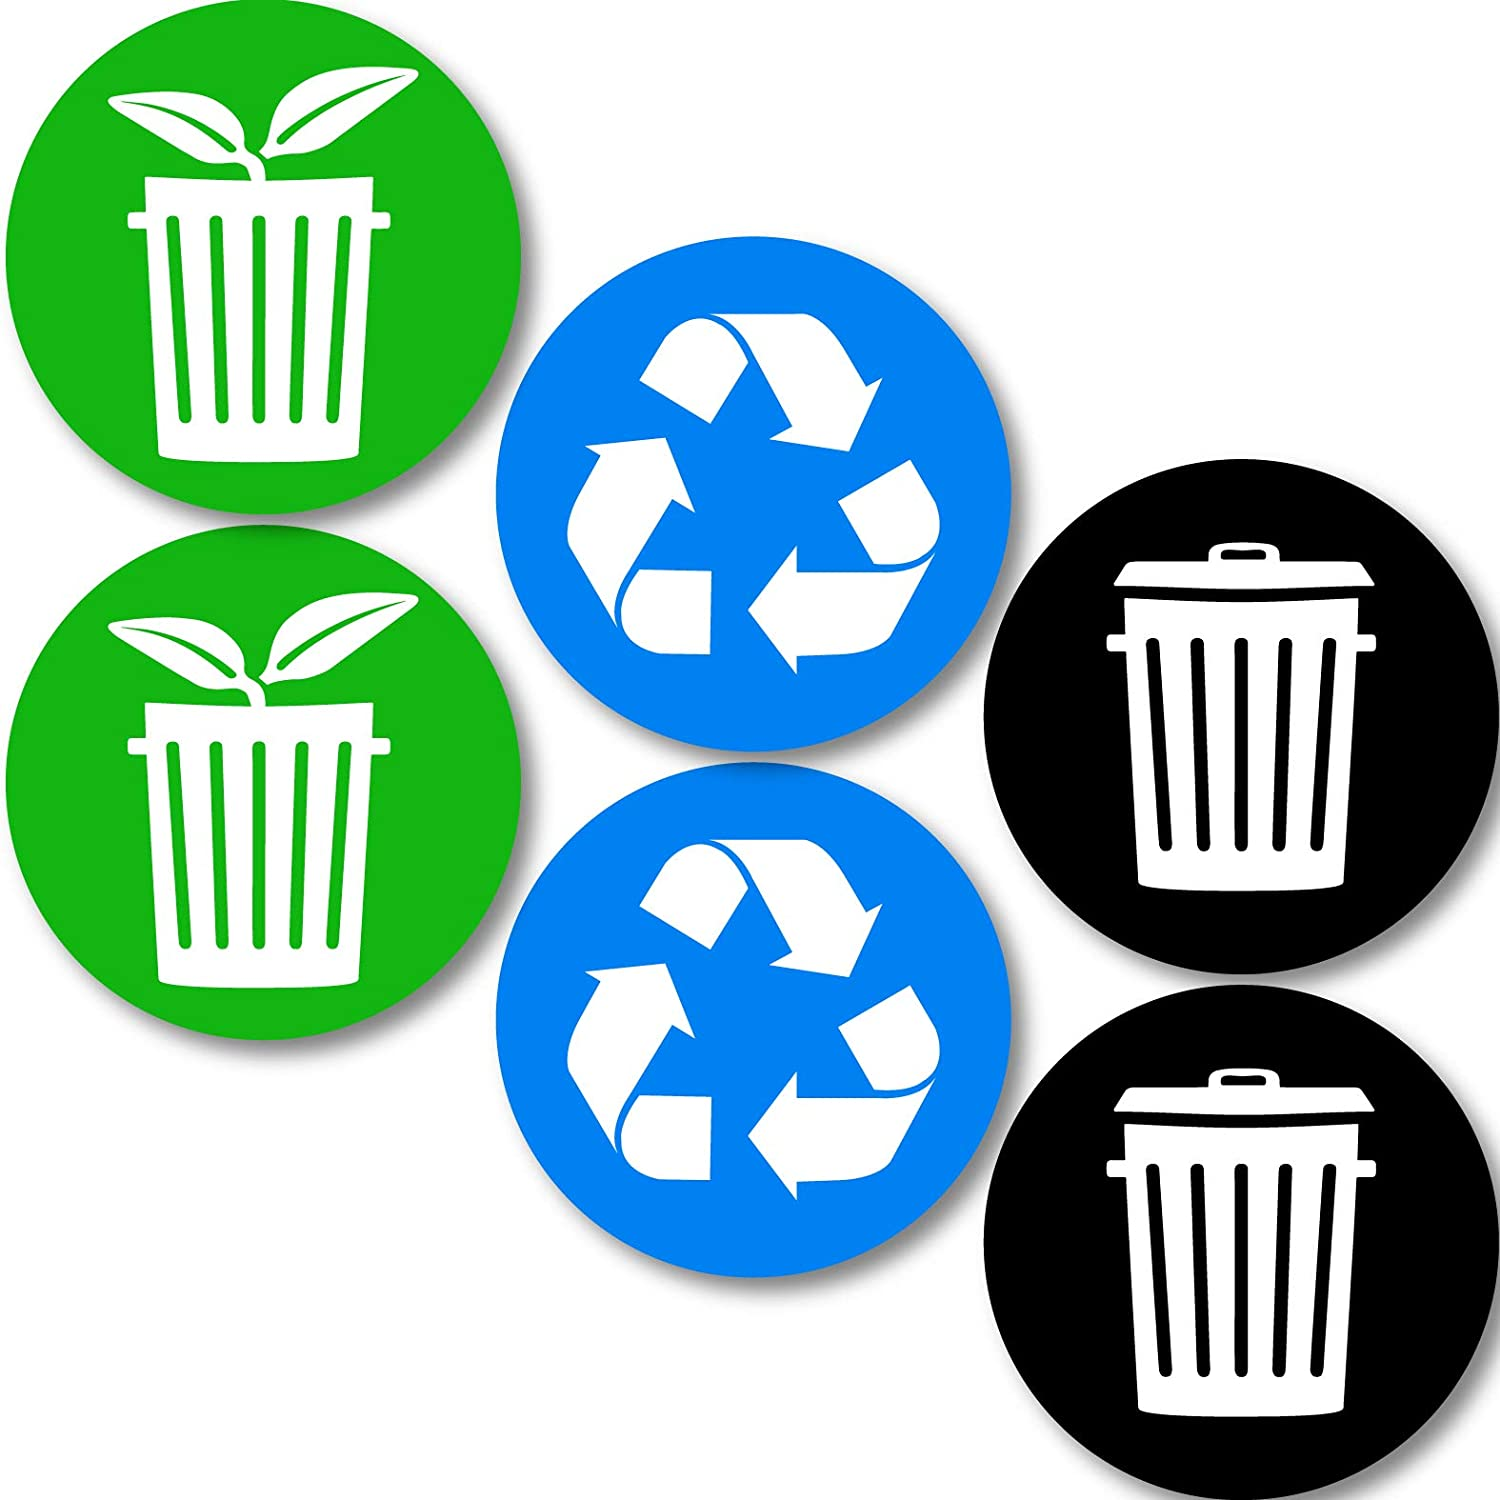 Recycle Trash and Compost Logo Stickers (6 Pack) 4in x 4in - Organize Trash - for Metal or Plastic Garbage cans, containers and Bins - Indoor & Outdoor - Home or Office - Premium (Small, Compost 6pk)